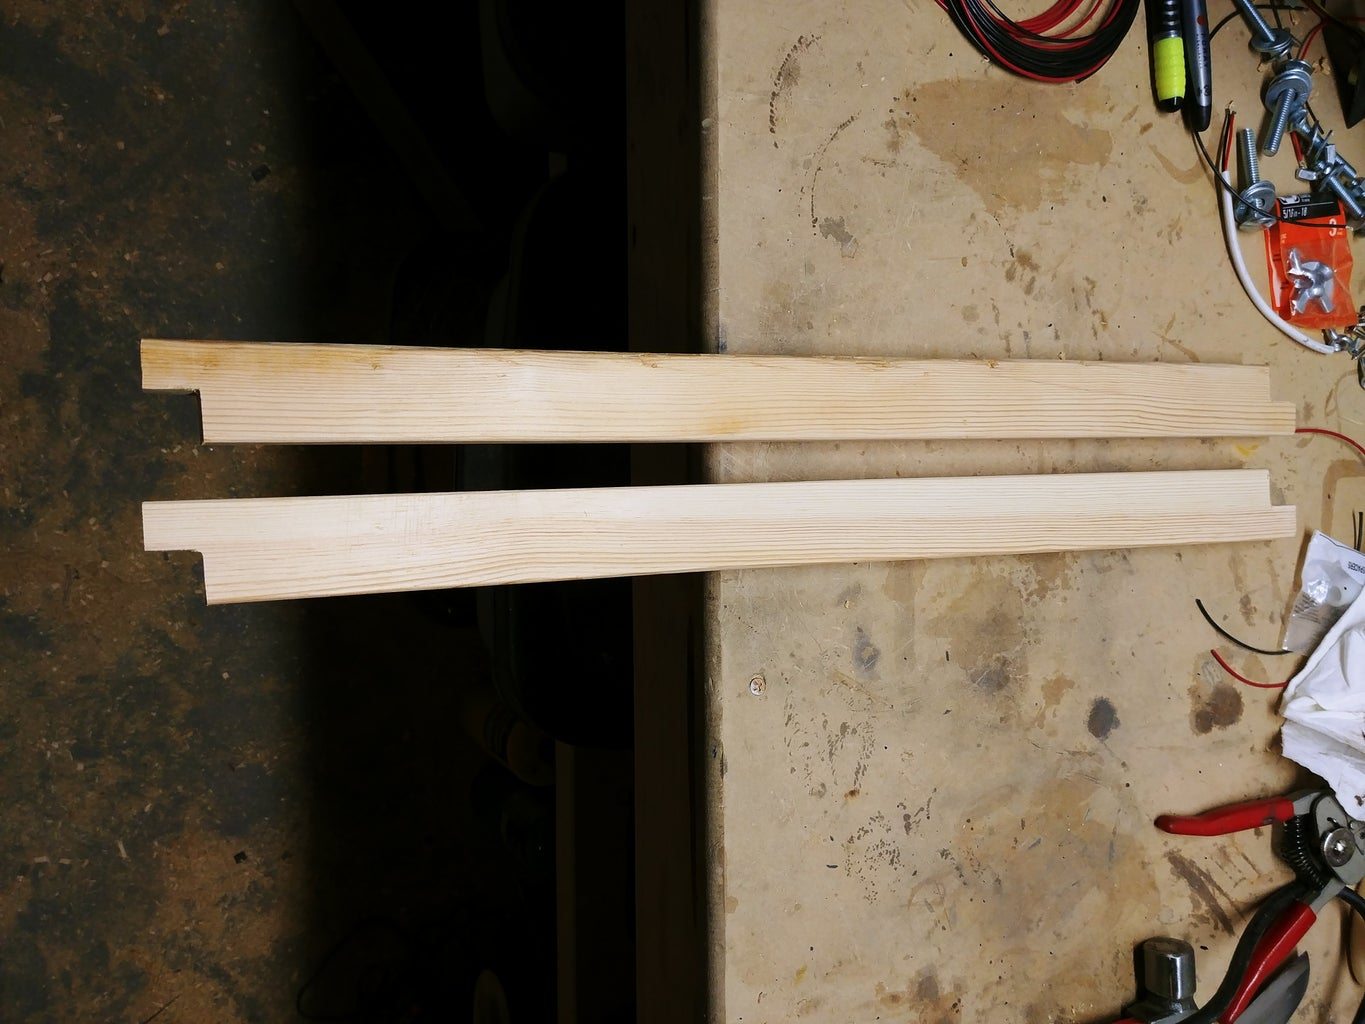 Making the Lamp Arms and Clamp